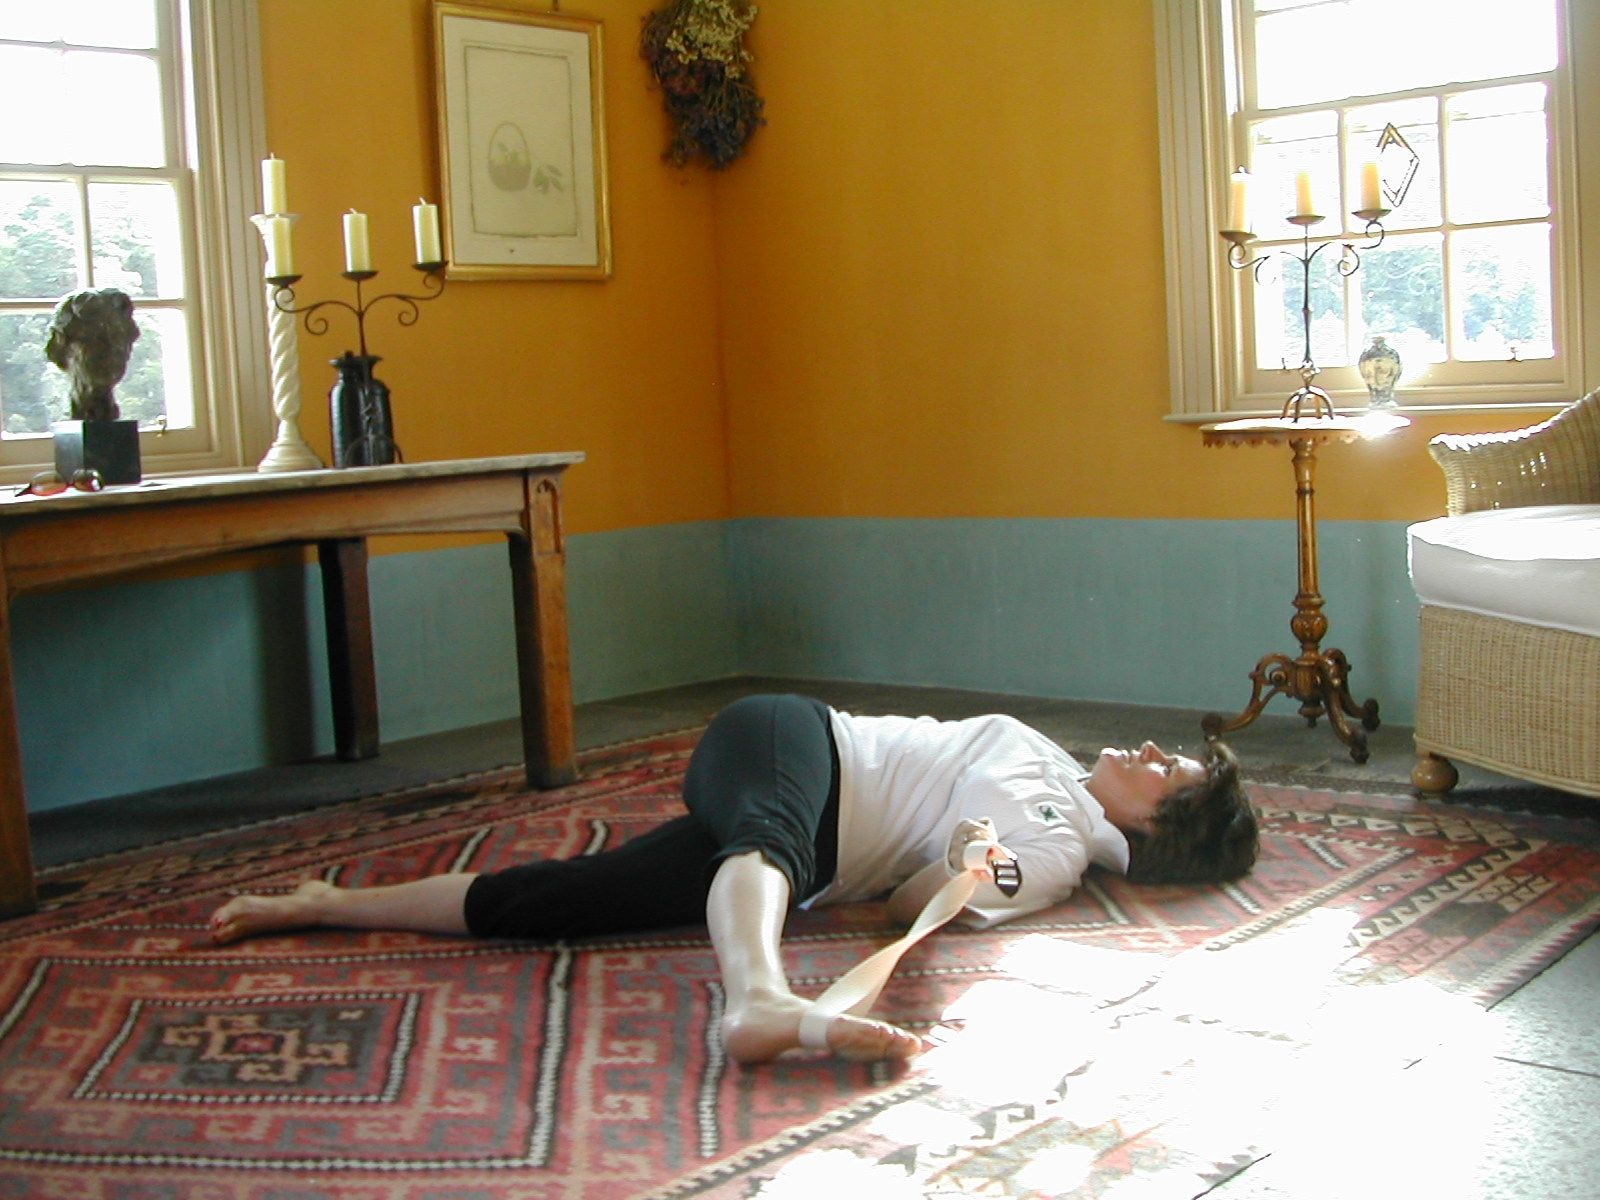 Advanced Sciatic Nerve Stretch 1 is part of exercise 4 in Sarah Key's list of the best yoga for lower back pain